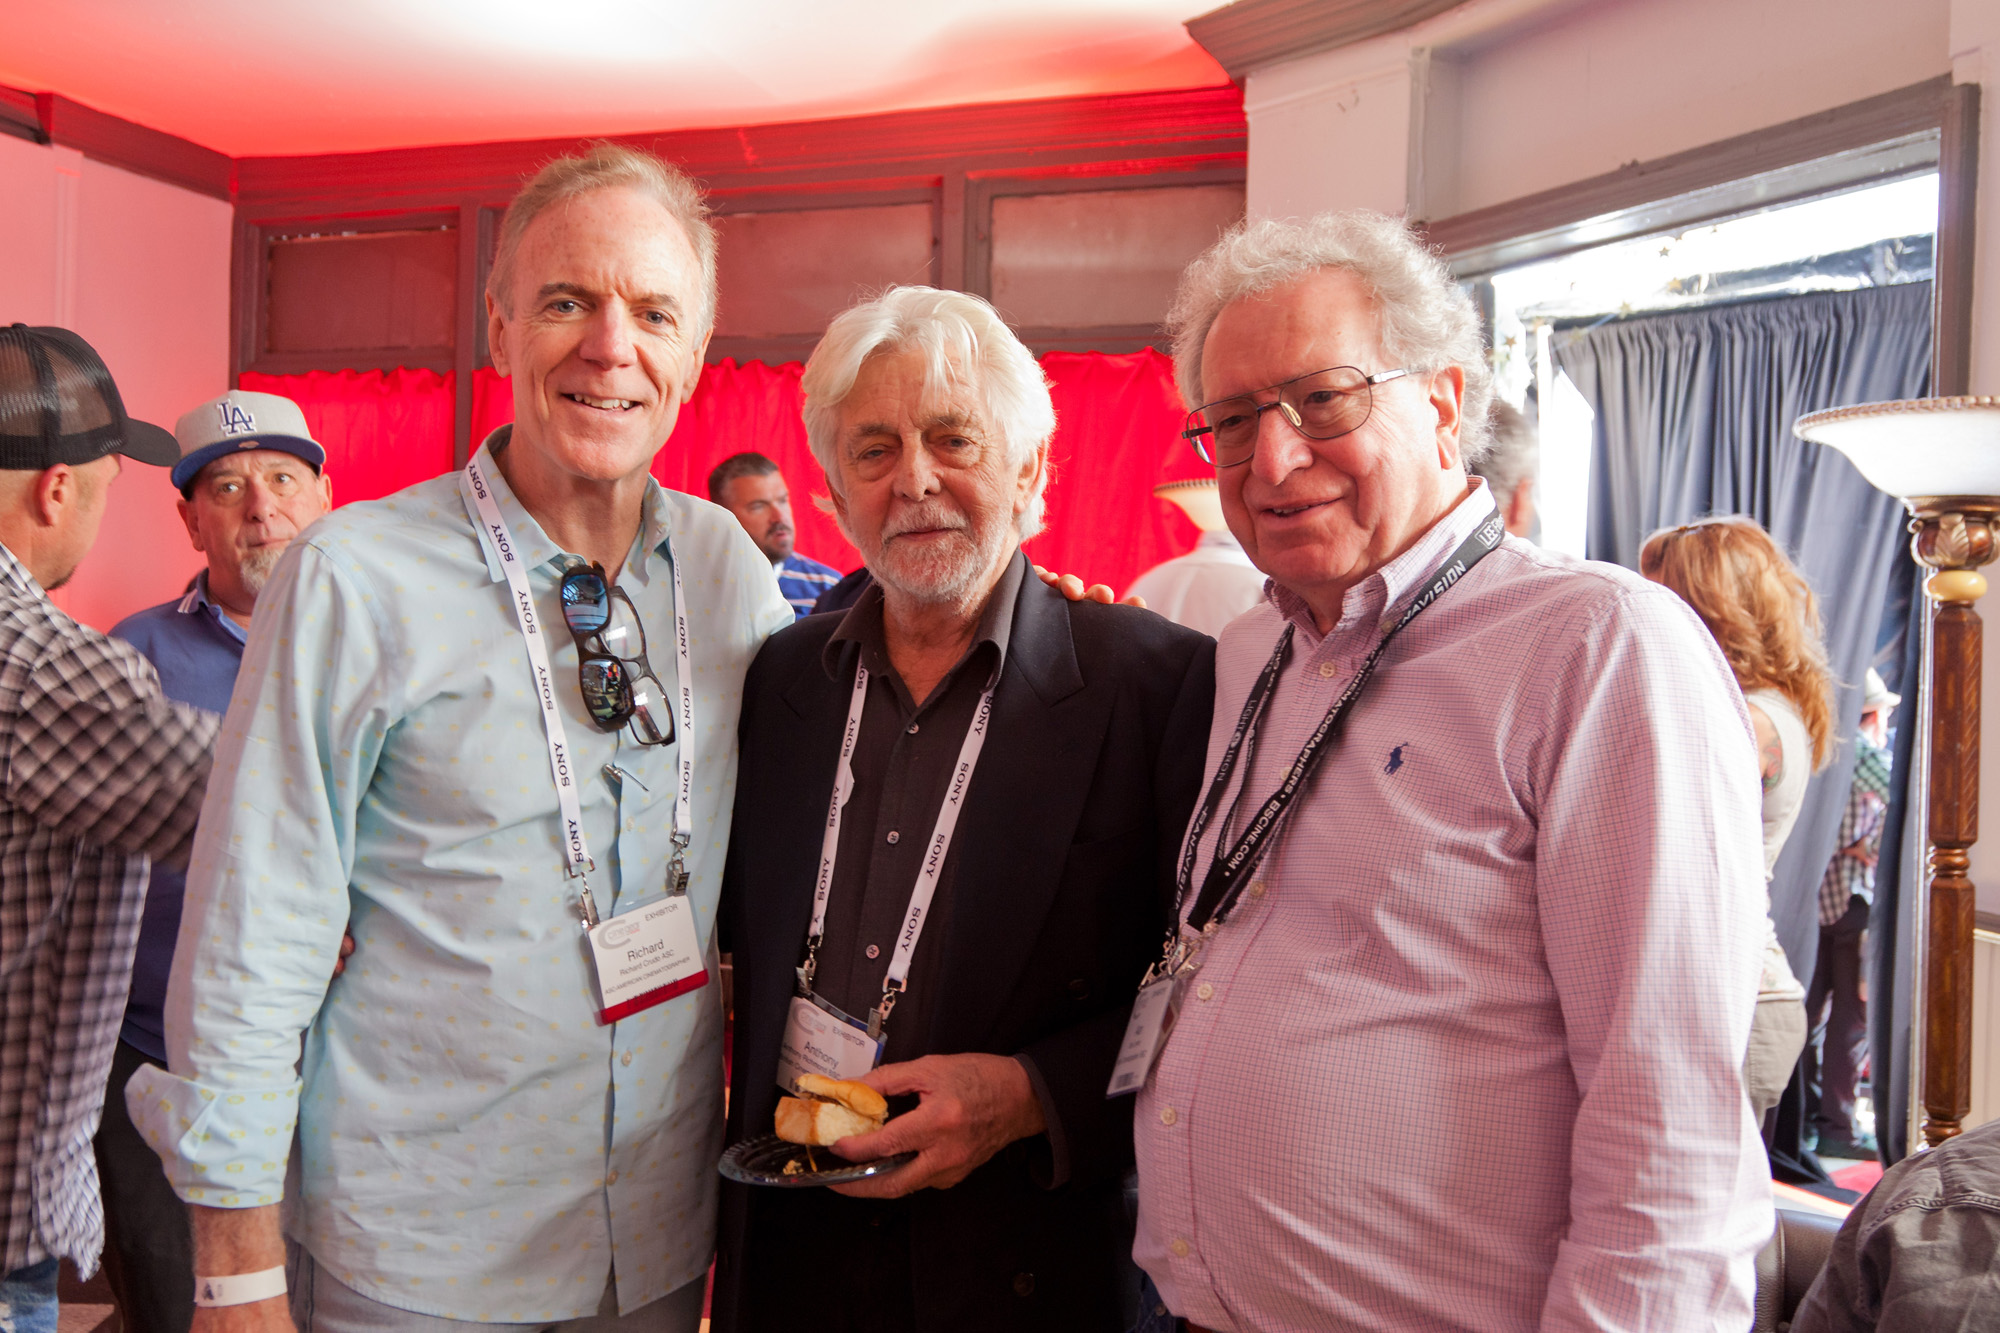 Among the visitors to the MBS lounge were Richard Crudo ASC, Tony Richmond BSC ASC and British Cinematographer magazine publisher Alan Lowne (above). Photos by George Leon/Filmcastlive